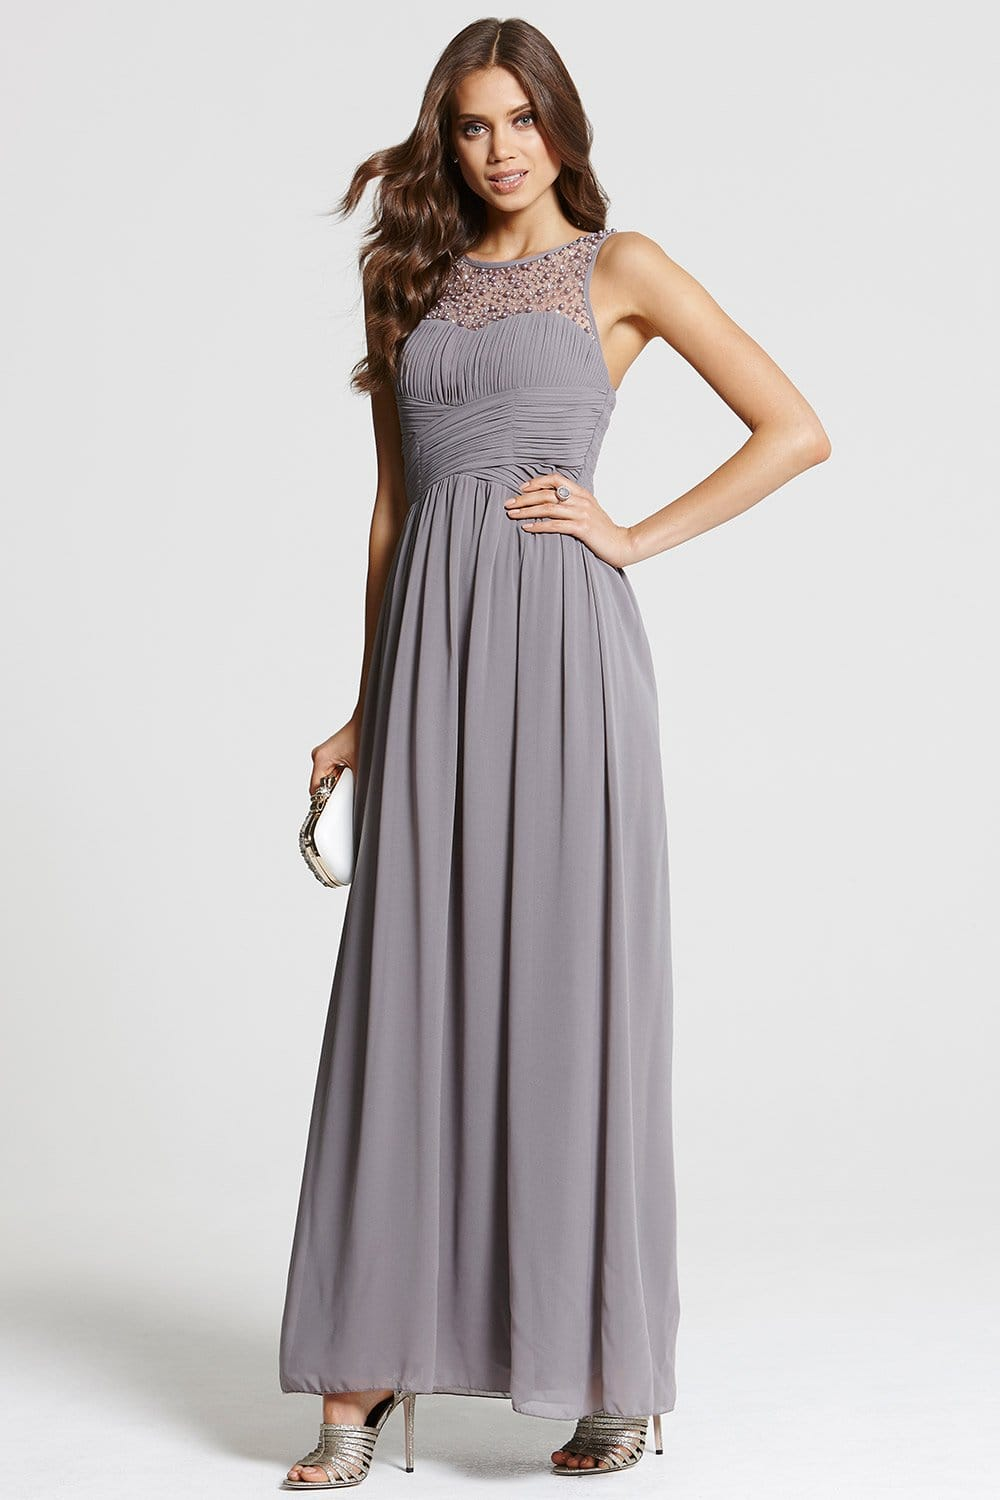 Find and save ideas about Grey dresses on Pinterest. | See more ideas about Floral dresses, Summer maxi dresses and Maxi dresses. Women's fashion. Grey dresses; Grey dresses. Floral dresses Long dark grey maxi dress, Gray dress with pockets and long sleeves, Modest full women's floor length dress, Navy Grey dress Maxi Dress Oooo yes.